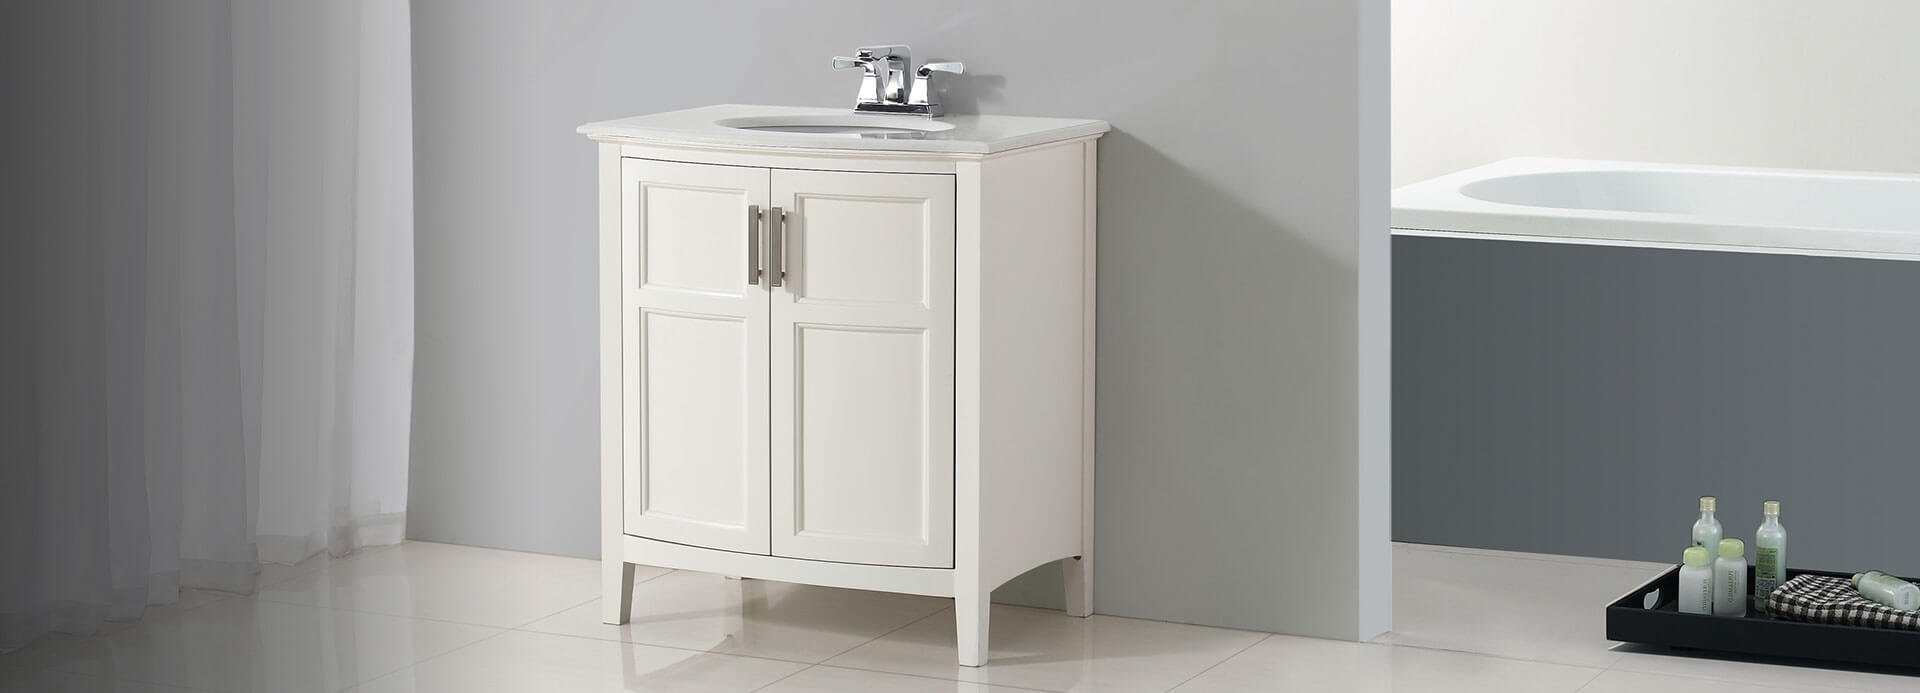 Top Rated Bathroom Cabinets